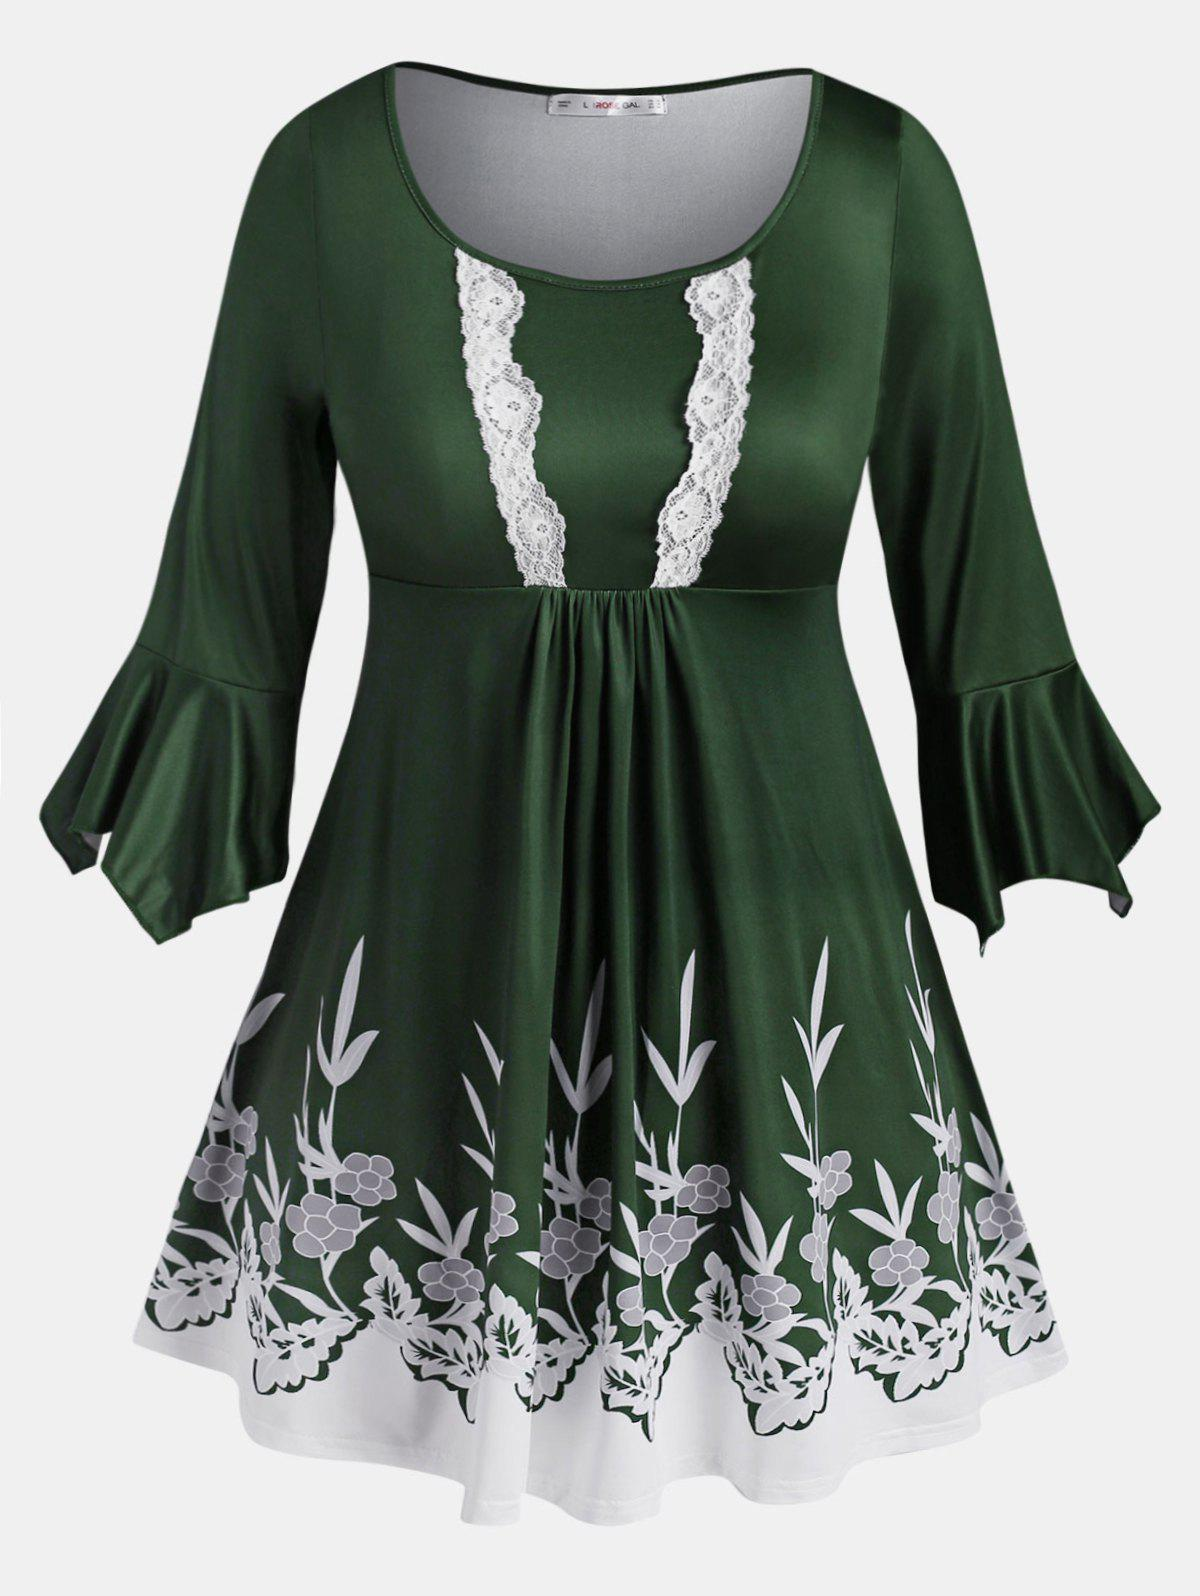 Lace Trim Leaves Floral Flare Sleeve Plus Size Blouse - DEEP GREEN 2X